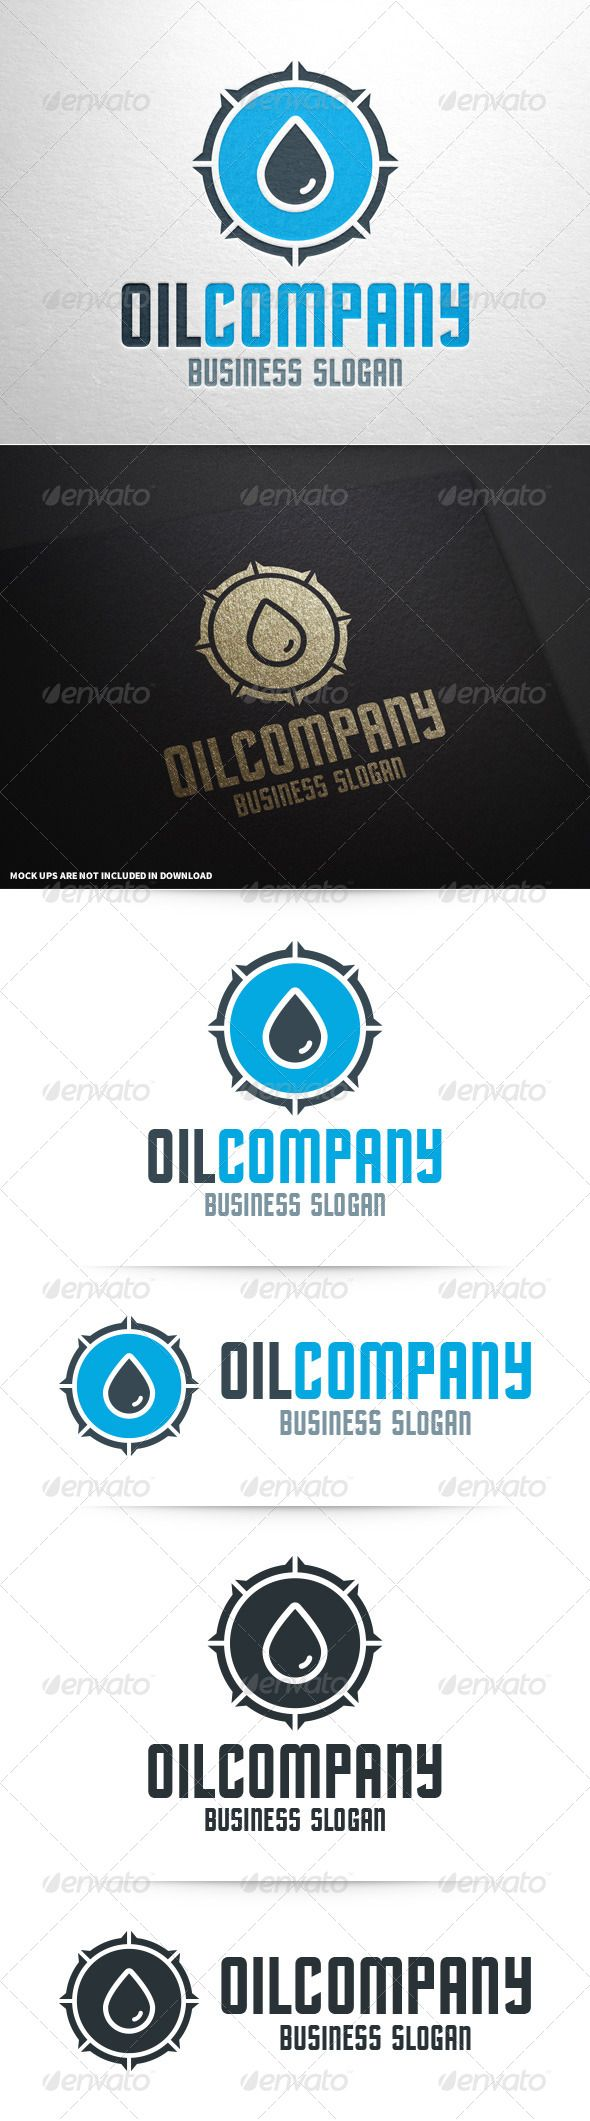 Oil Company - Logo Design Template Vector #logotype Download it here: http://graphicriver.net/item/oil-company-logo-template/8604032?s_rank=1661?ref=nexion